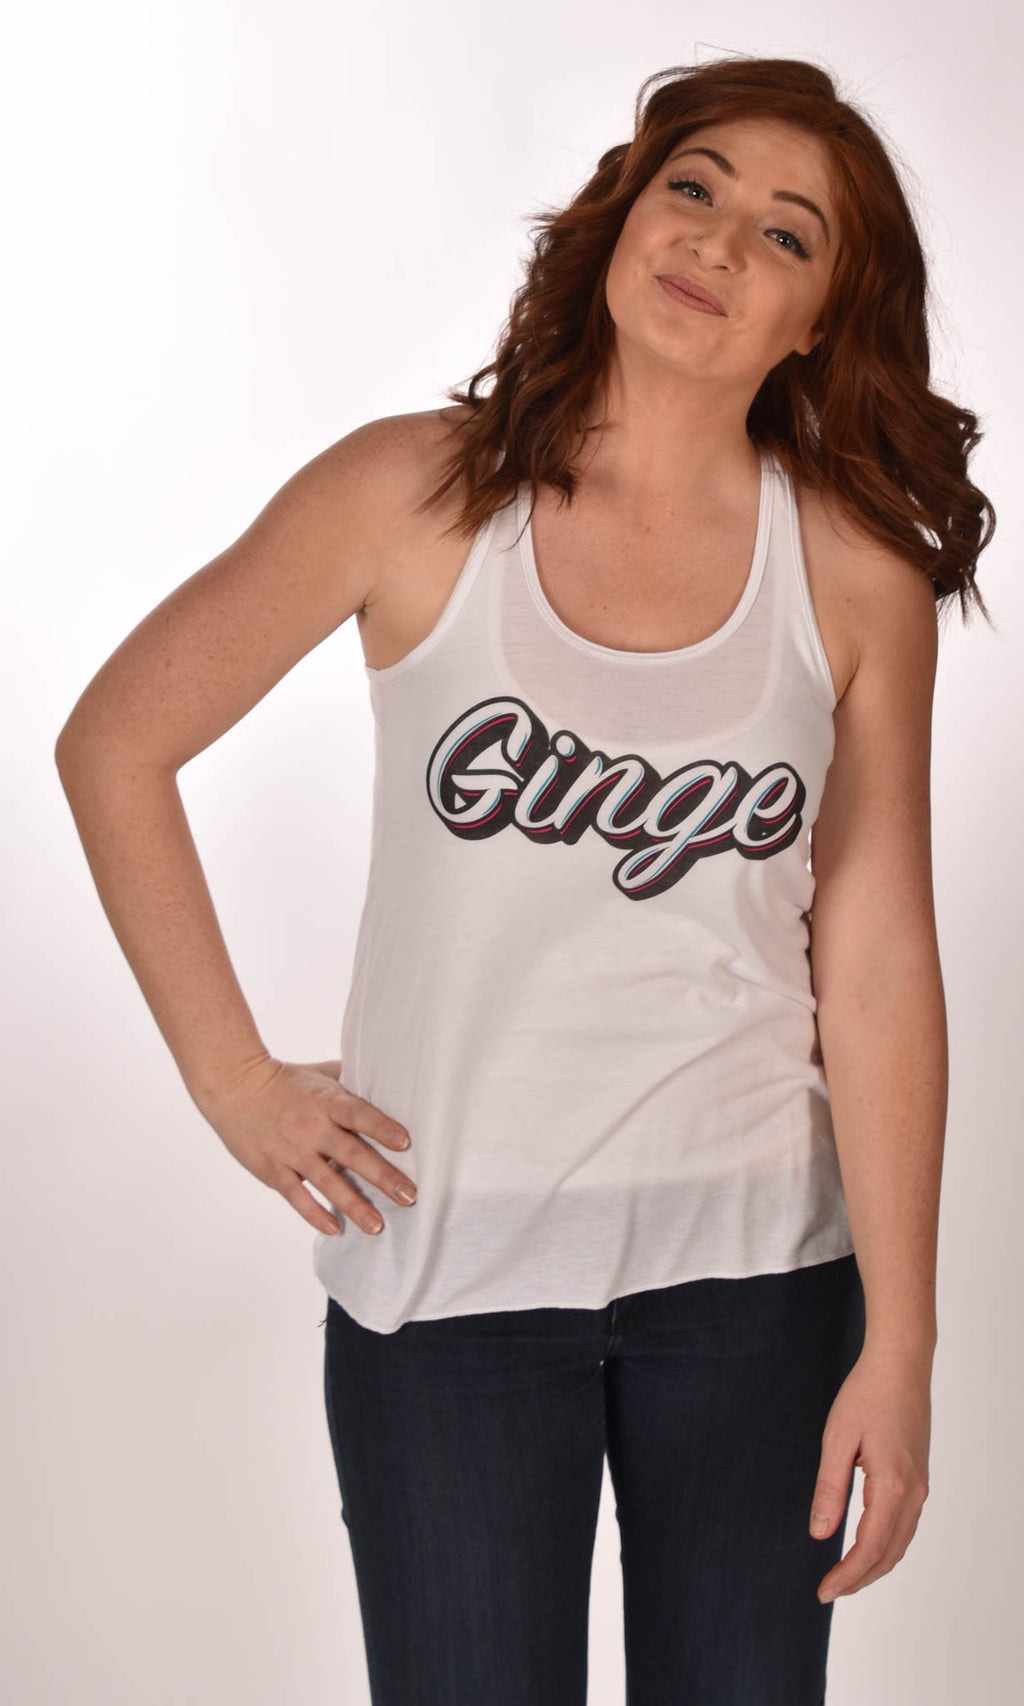 Ginge Hustle Flowy Tank Top White Ginger Problems - Red Hair Don't Care